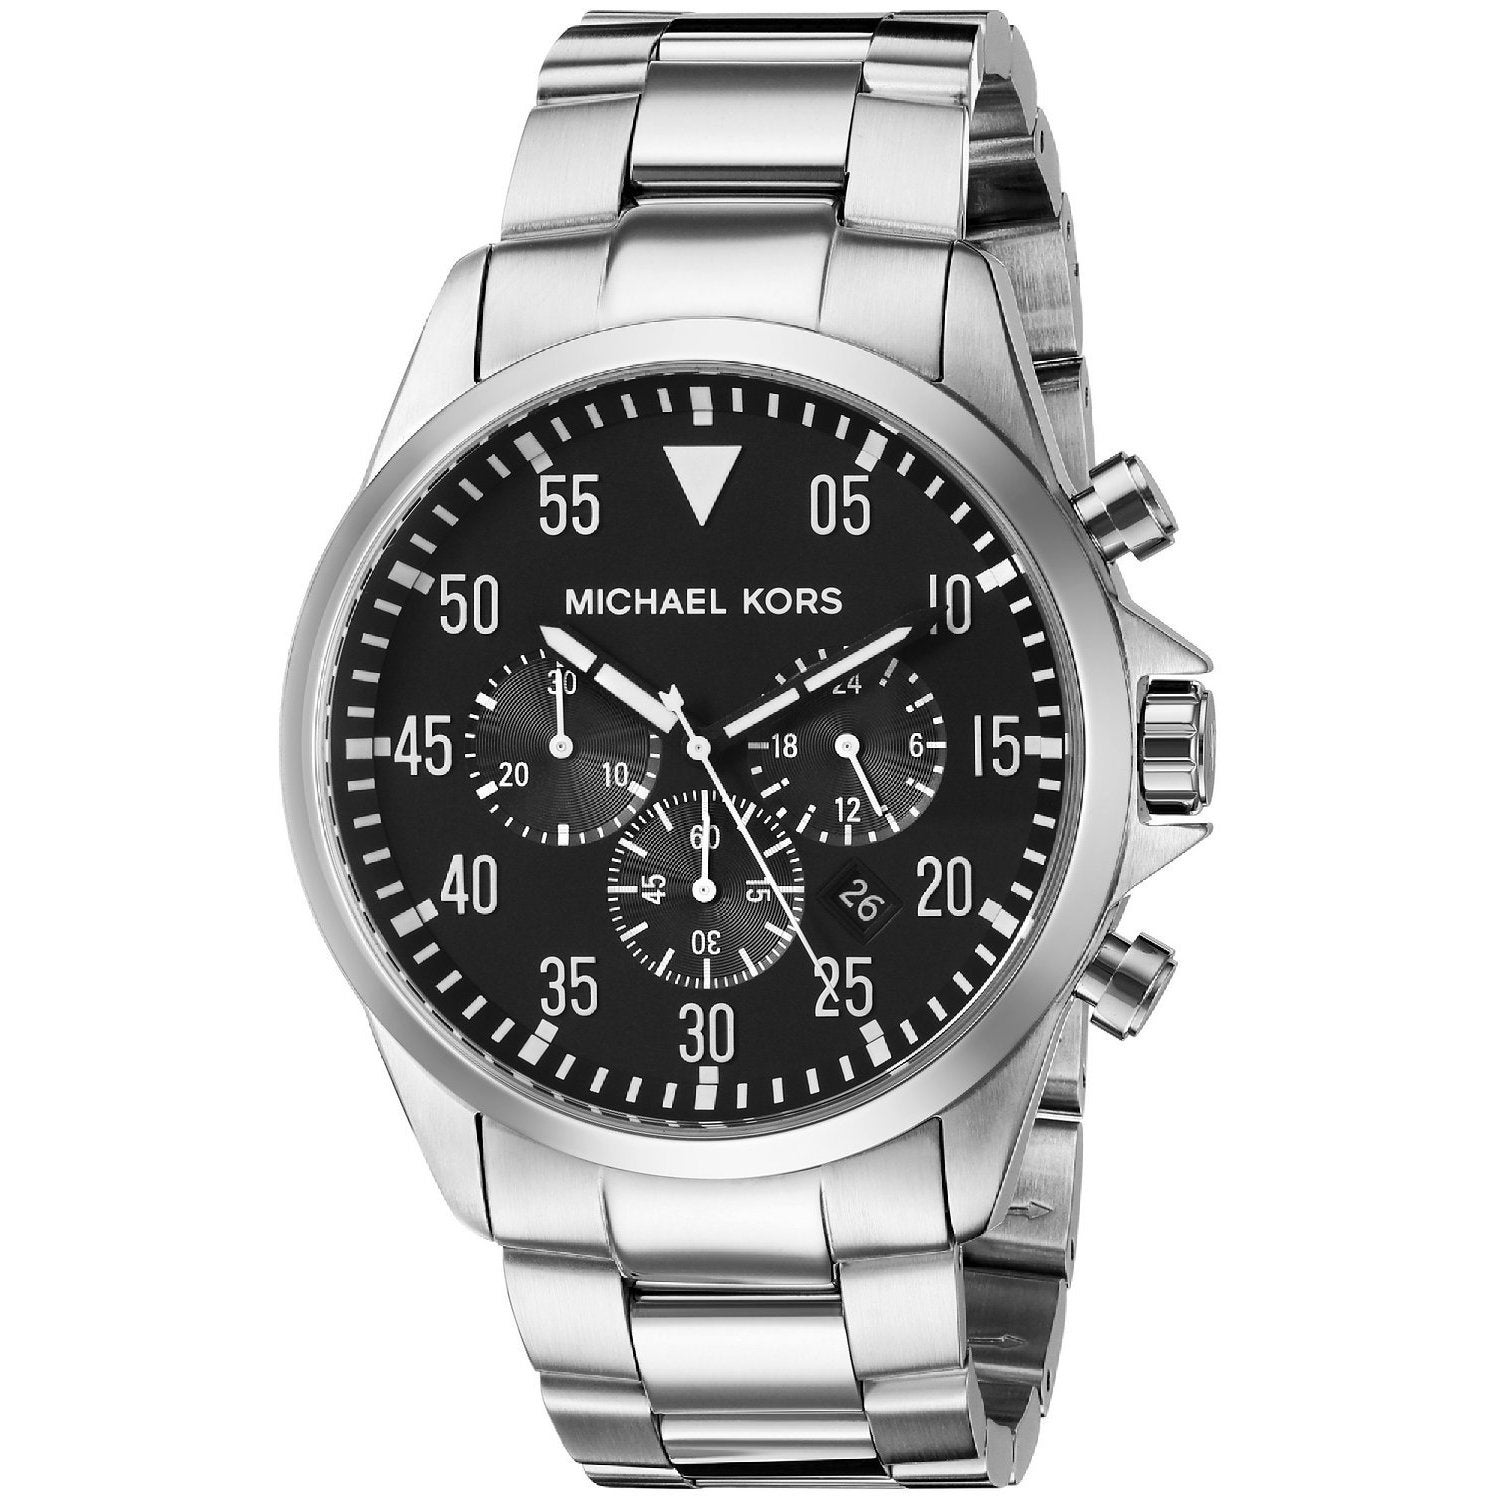 f8789c3c787e3 Shop Michael Kors Men s MK8413 Gage Round Silvertone Bracelet Watch -  silver - Free Shipping Today - Overstock - 10276442